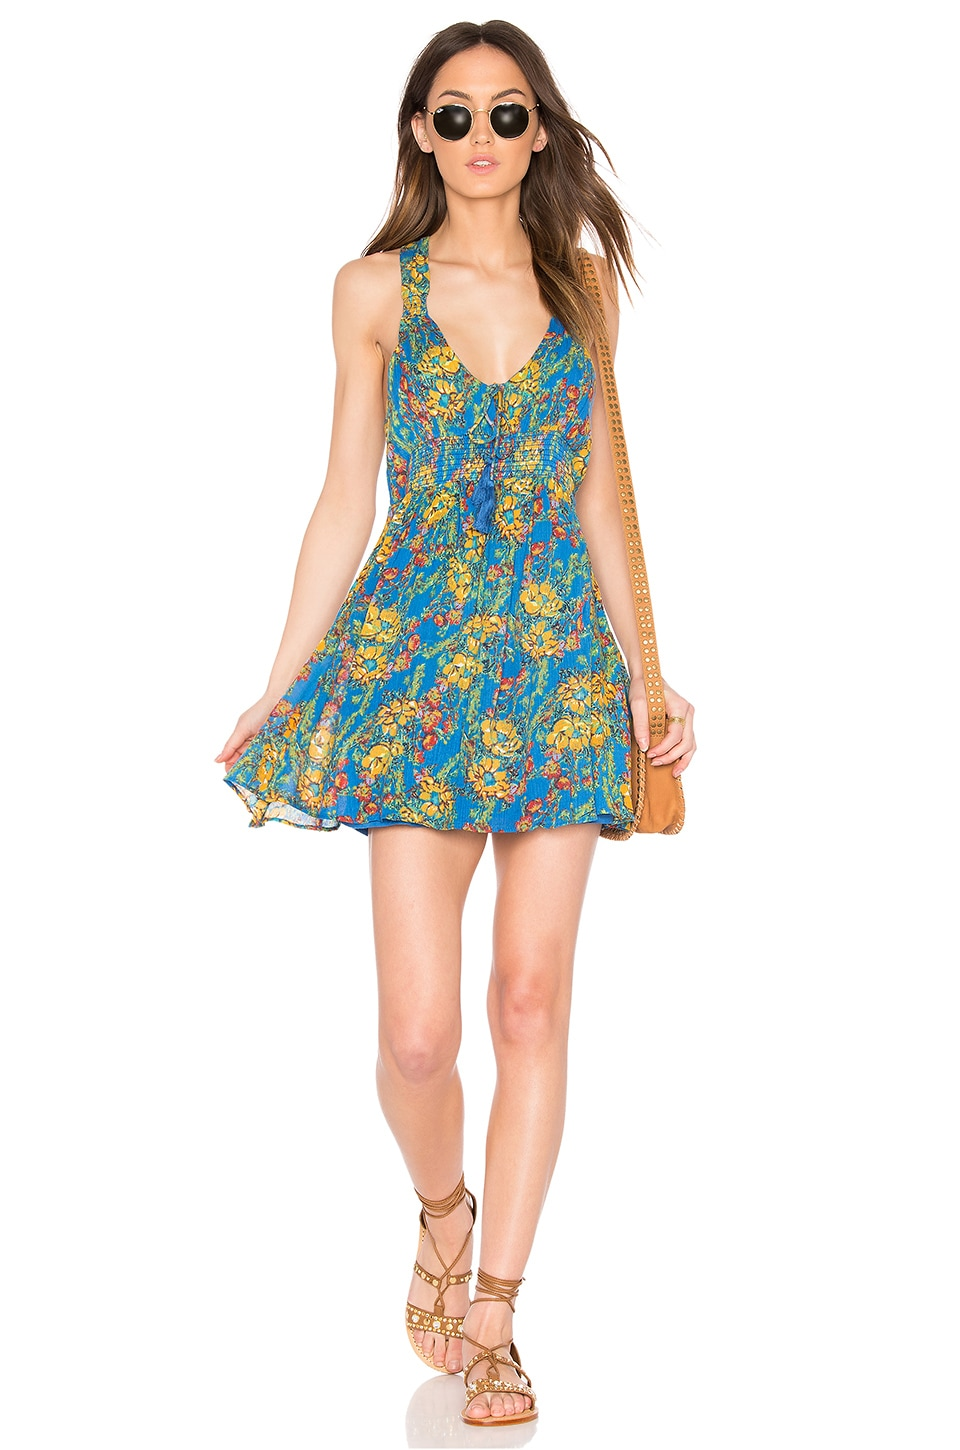 Washed Ashore Mini Dress by Free People